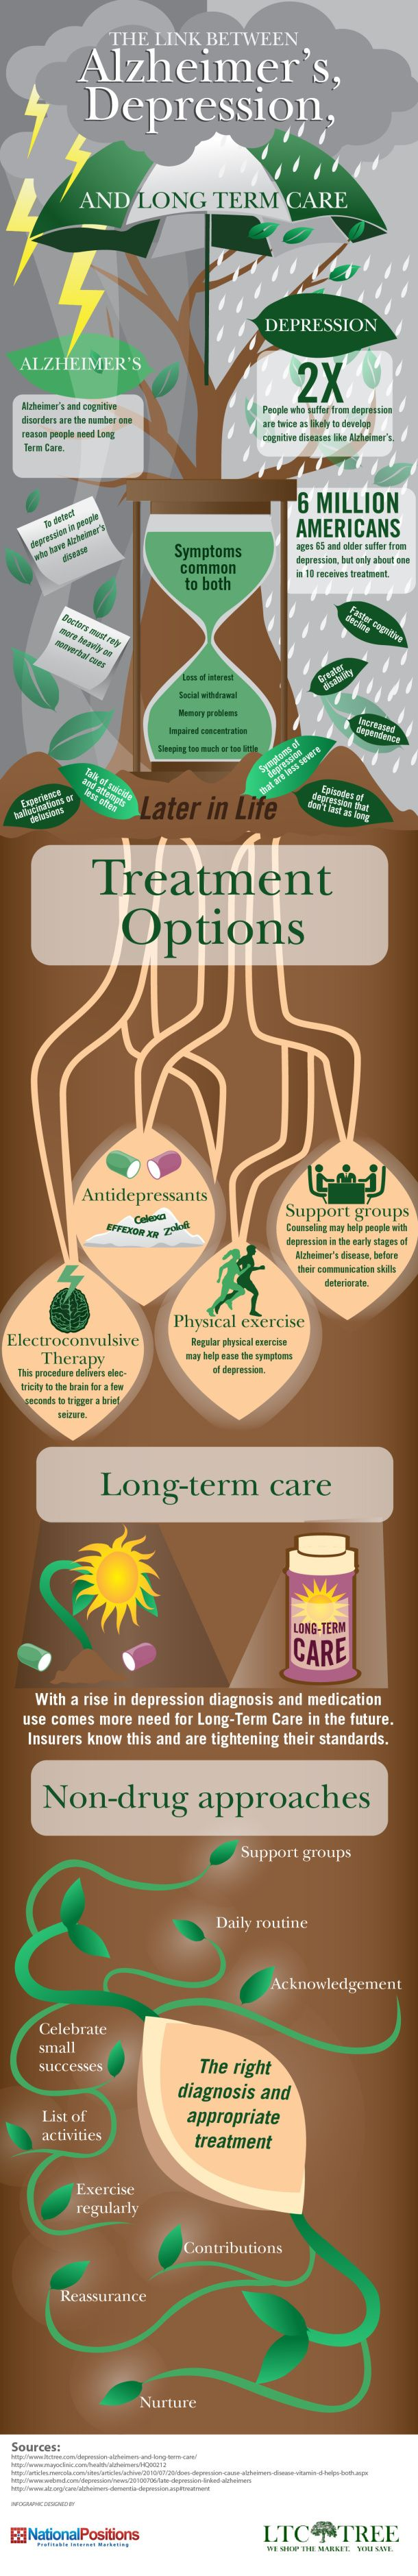 The Link Between Alzheimer's, Depression and Long Term Care [INFOGRAPHIC] #alzheimers #depressed www.seniorcarecentral.netMarcia X 3